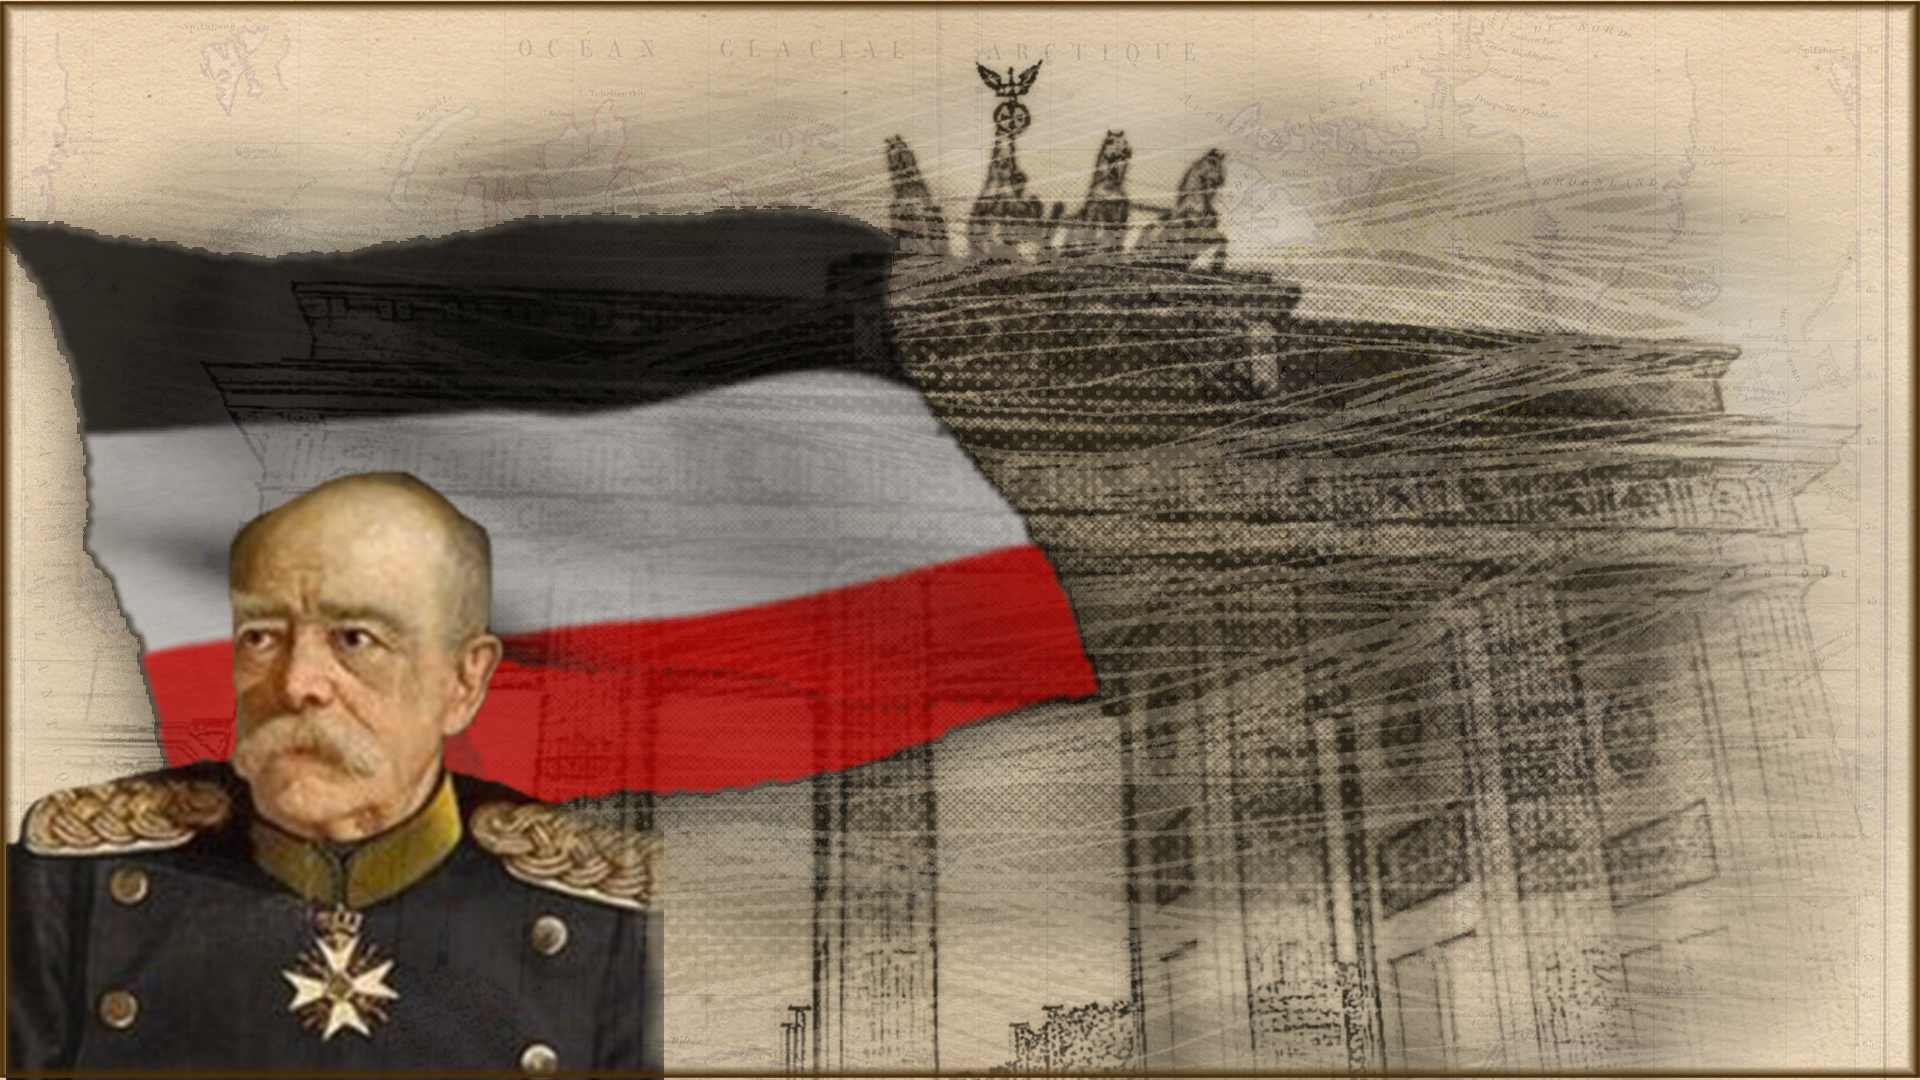 domestic policies of otto von bismarck An essay on the domestic policies of otto von bismarck by stephen dimarco ib modern history september 23rd 2008 with his appointment as chancellor of germany in 1871otto von bismarck held vast amounts of control of germany's foreign and domestic affairs.